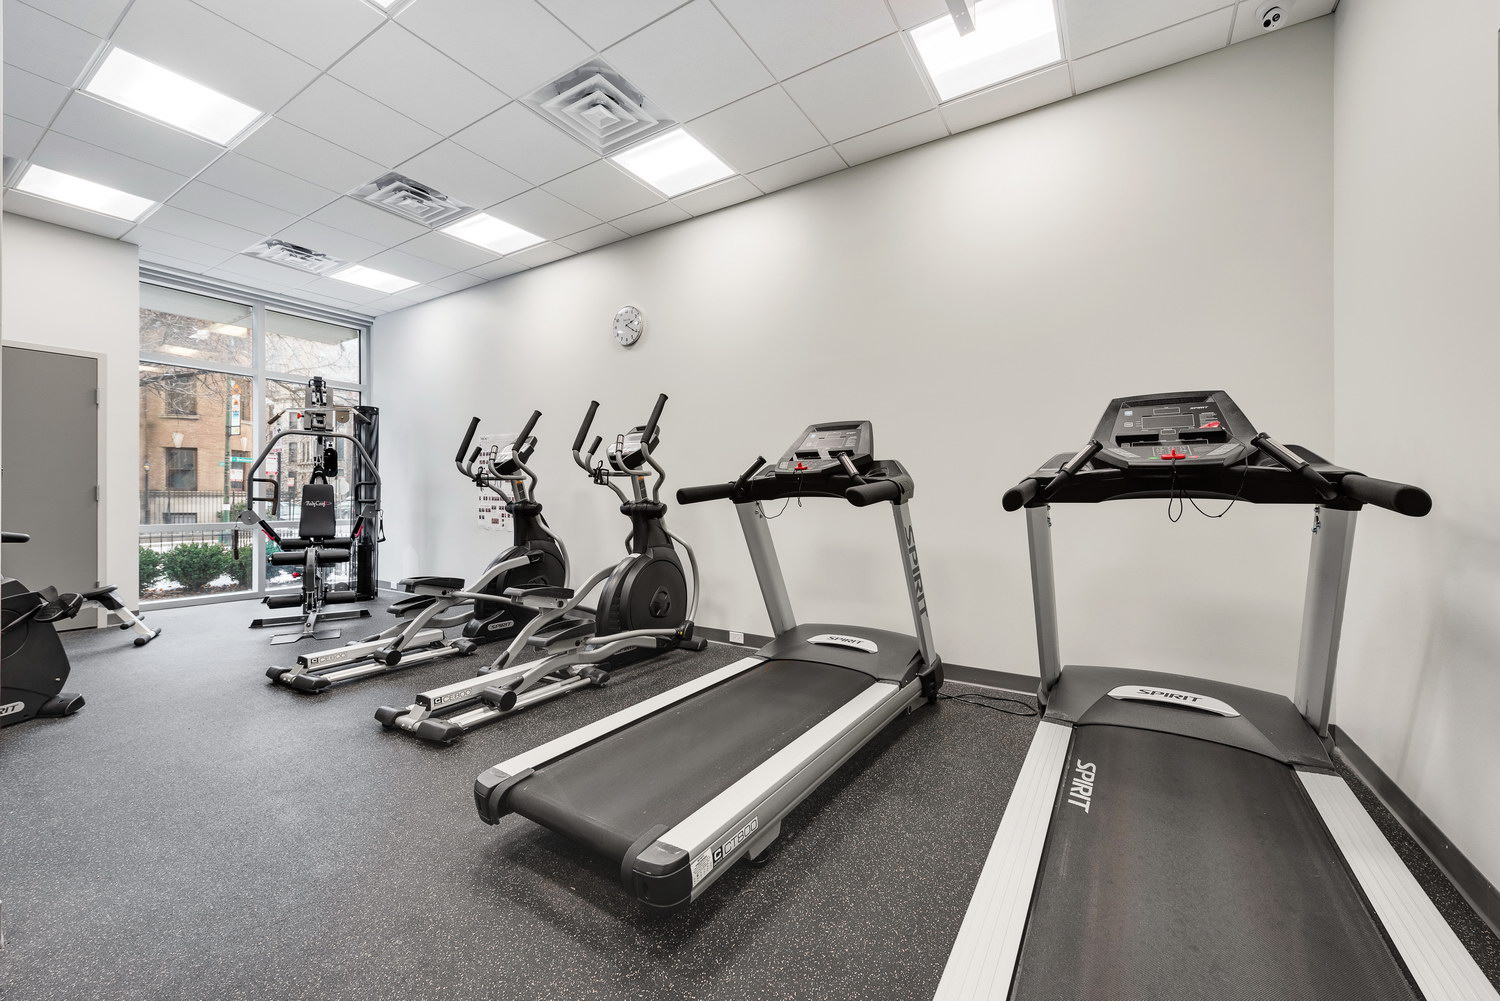 510 W Belmont - Fitness Center